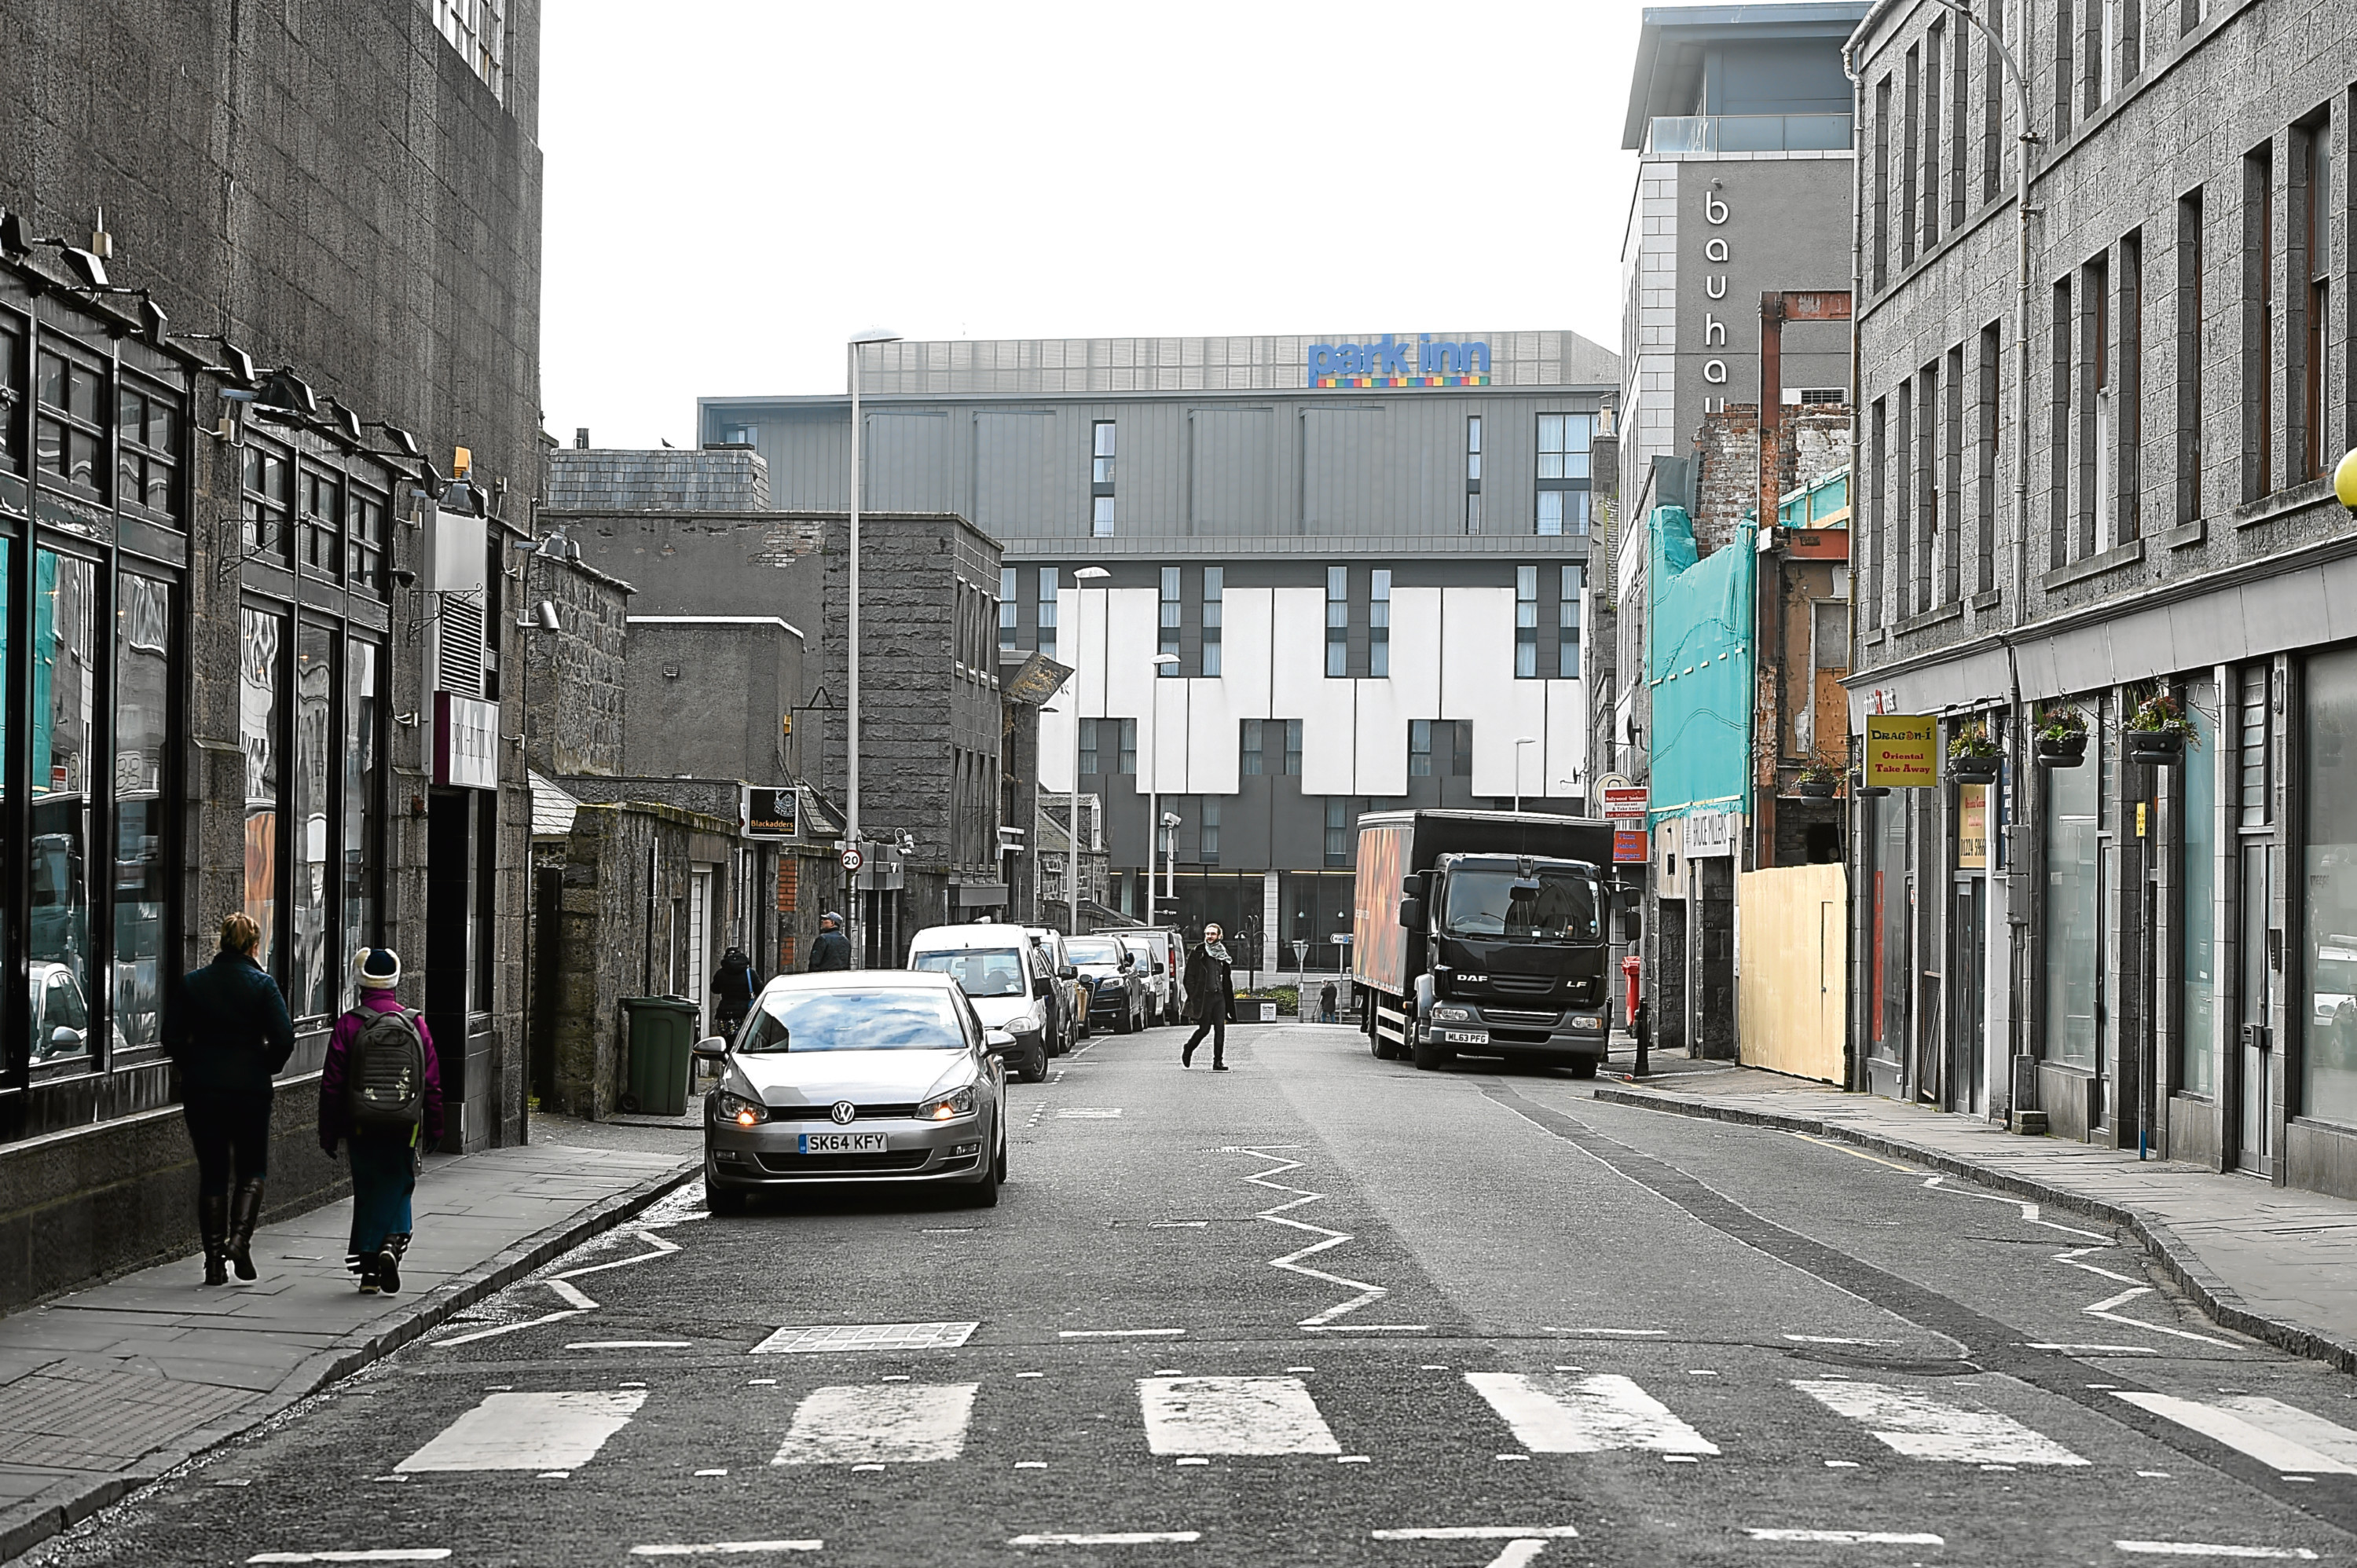 Vehicles could be banned from Langstane Place if plans are approved.